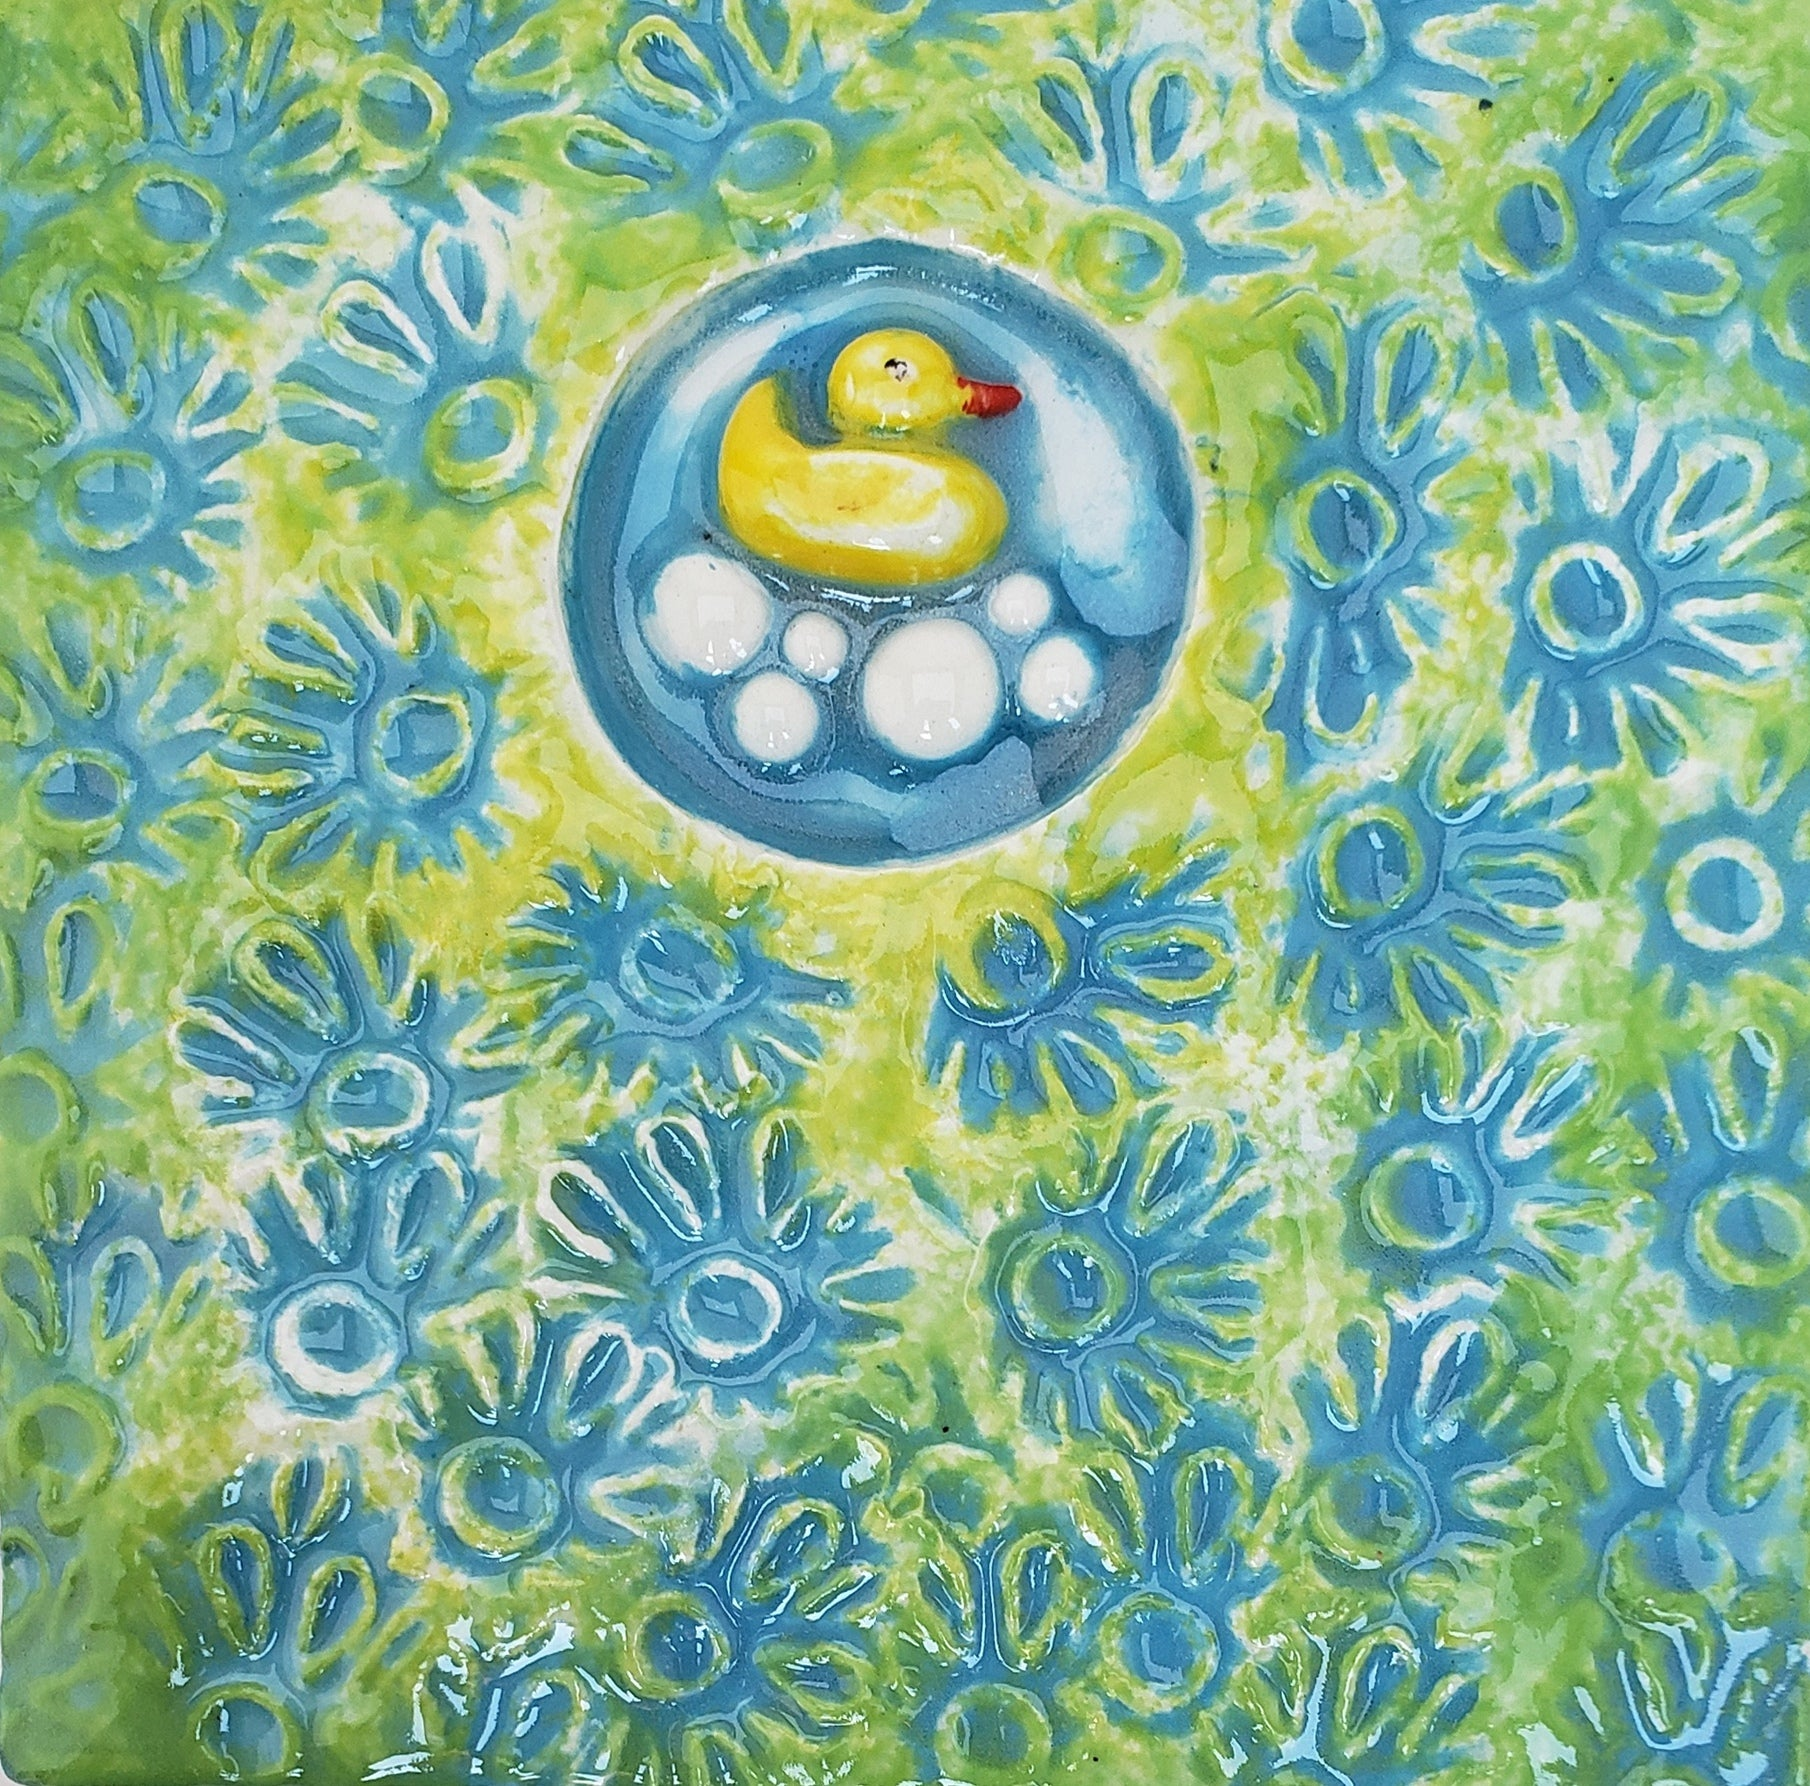 Rubber Duck 4x4 Ceramic Tile - Artworks by Karen Fincannon